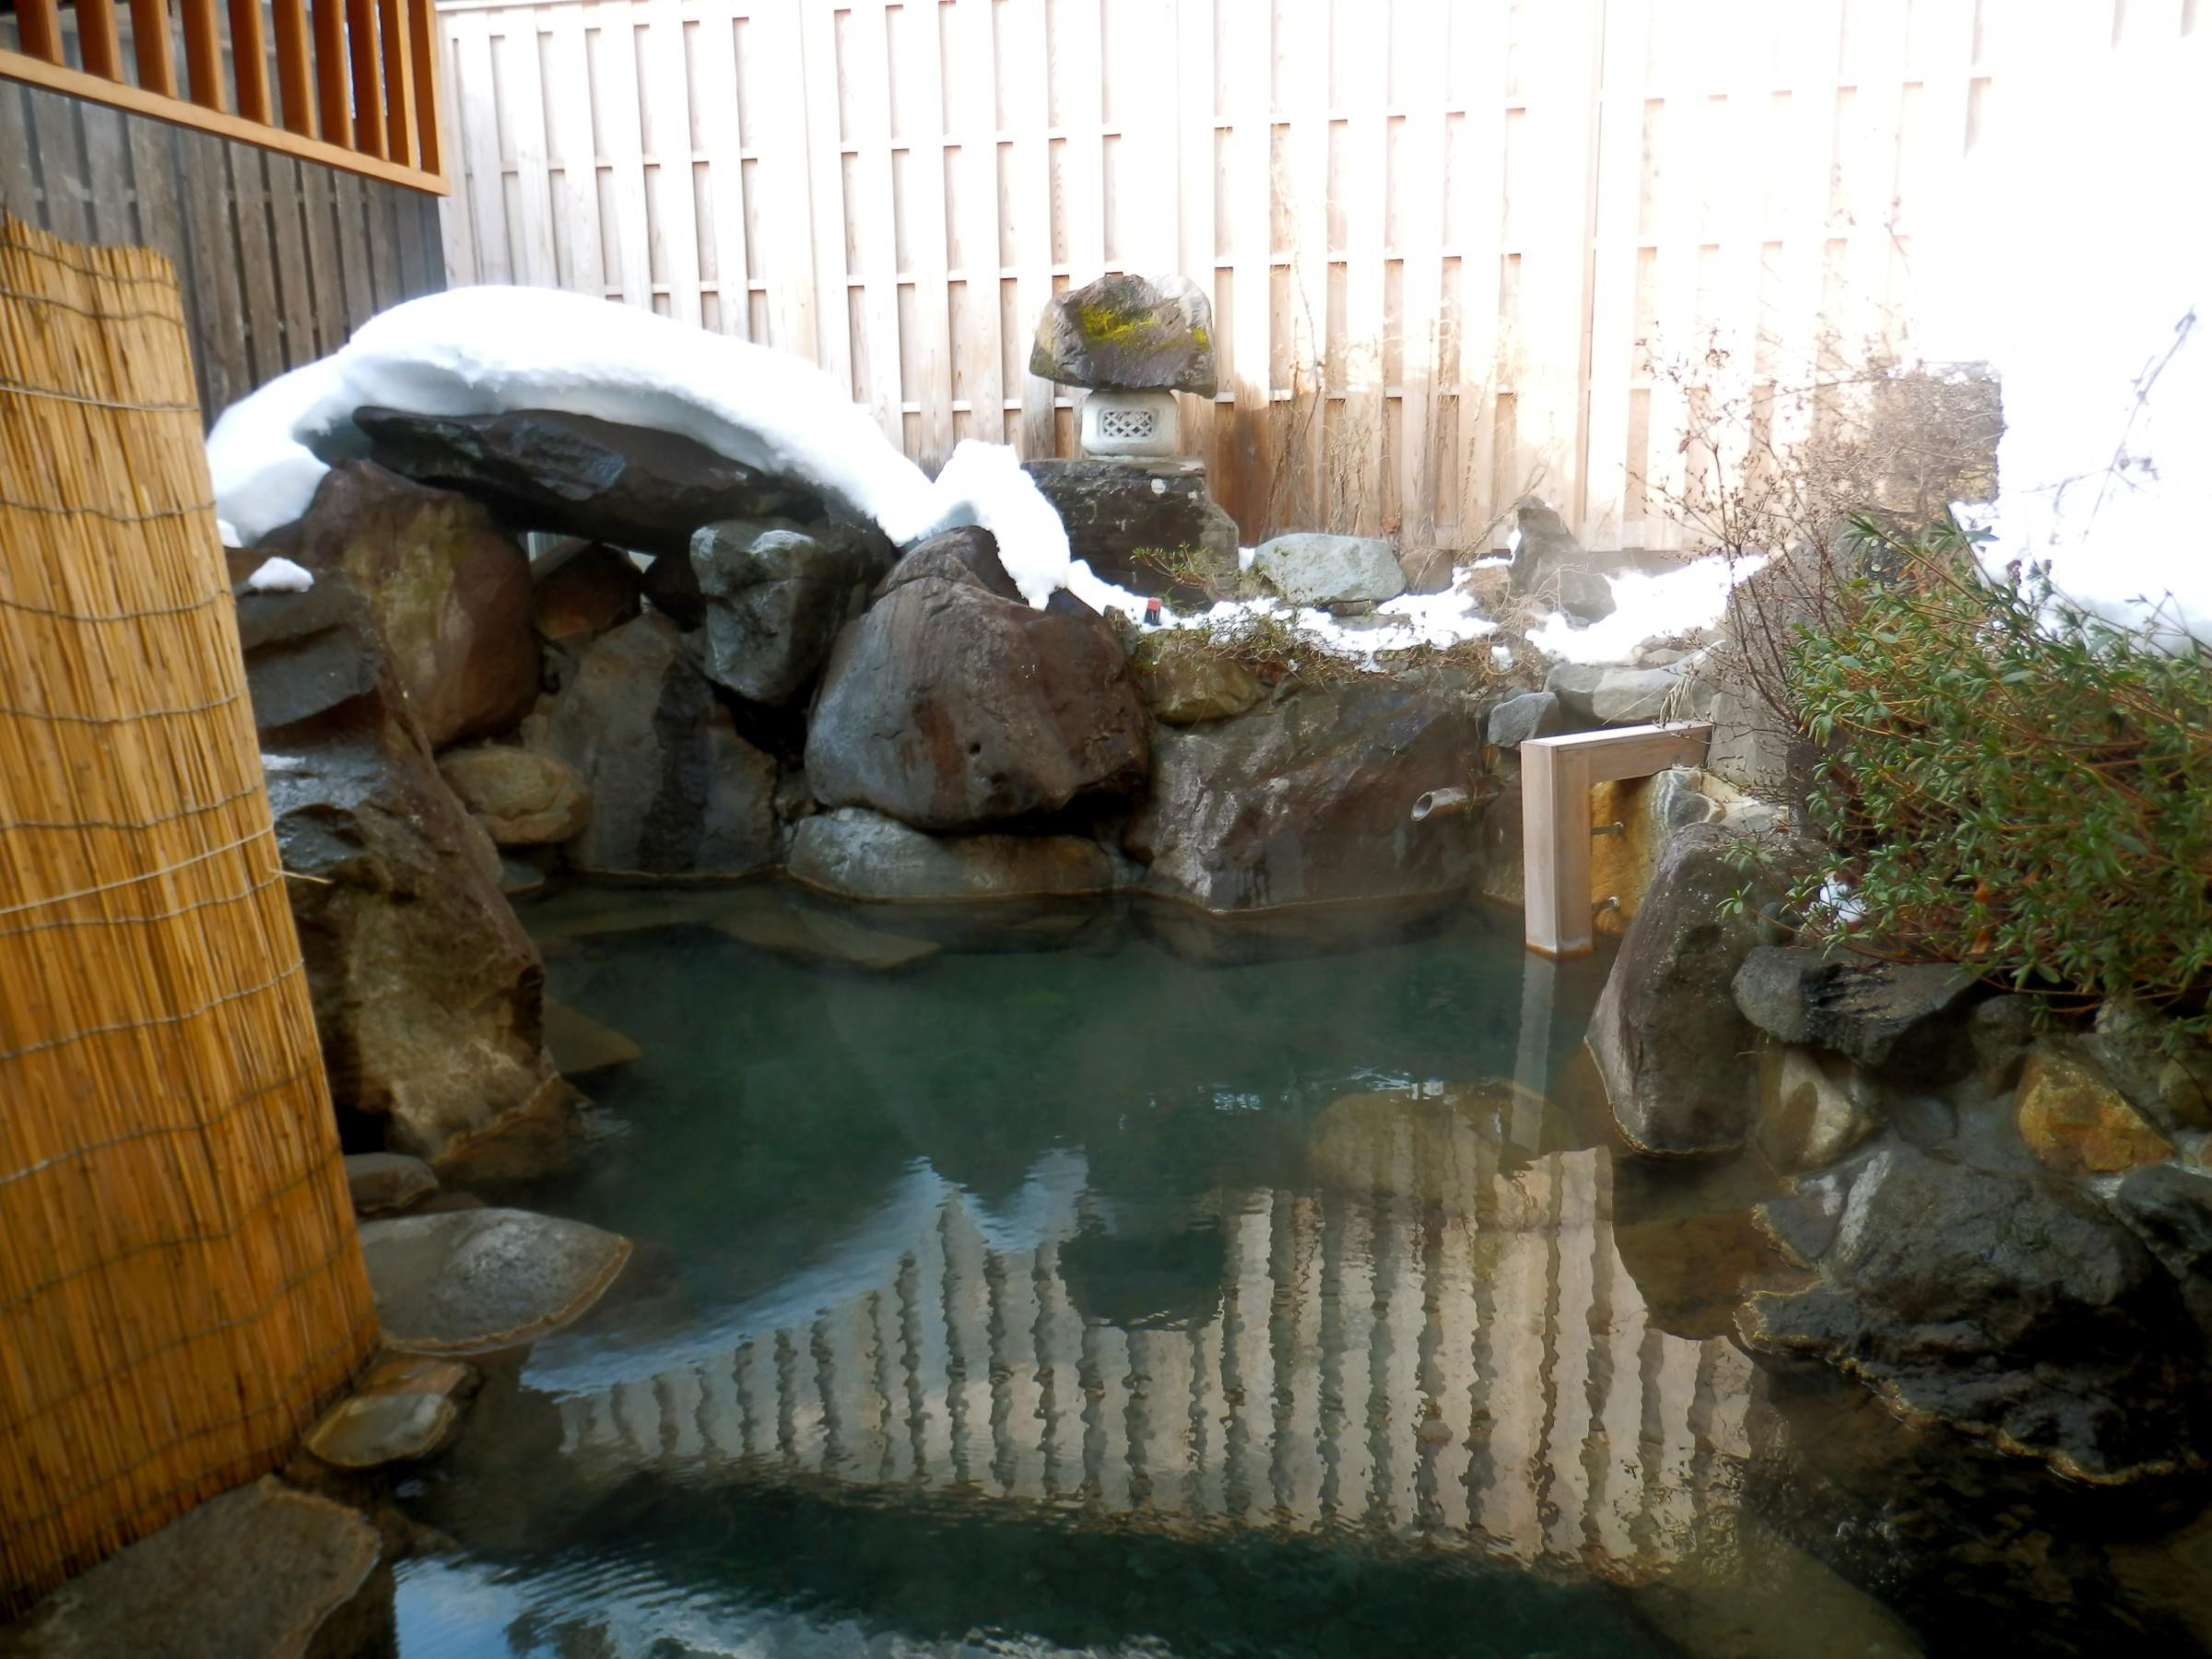 The onsen hot spring bath at Jinpyokaku ryokan in Yudanaka.